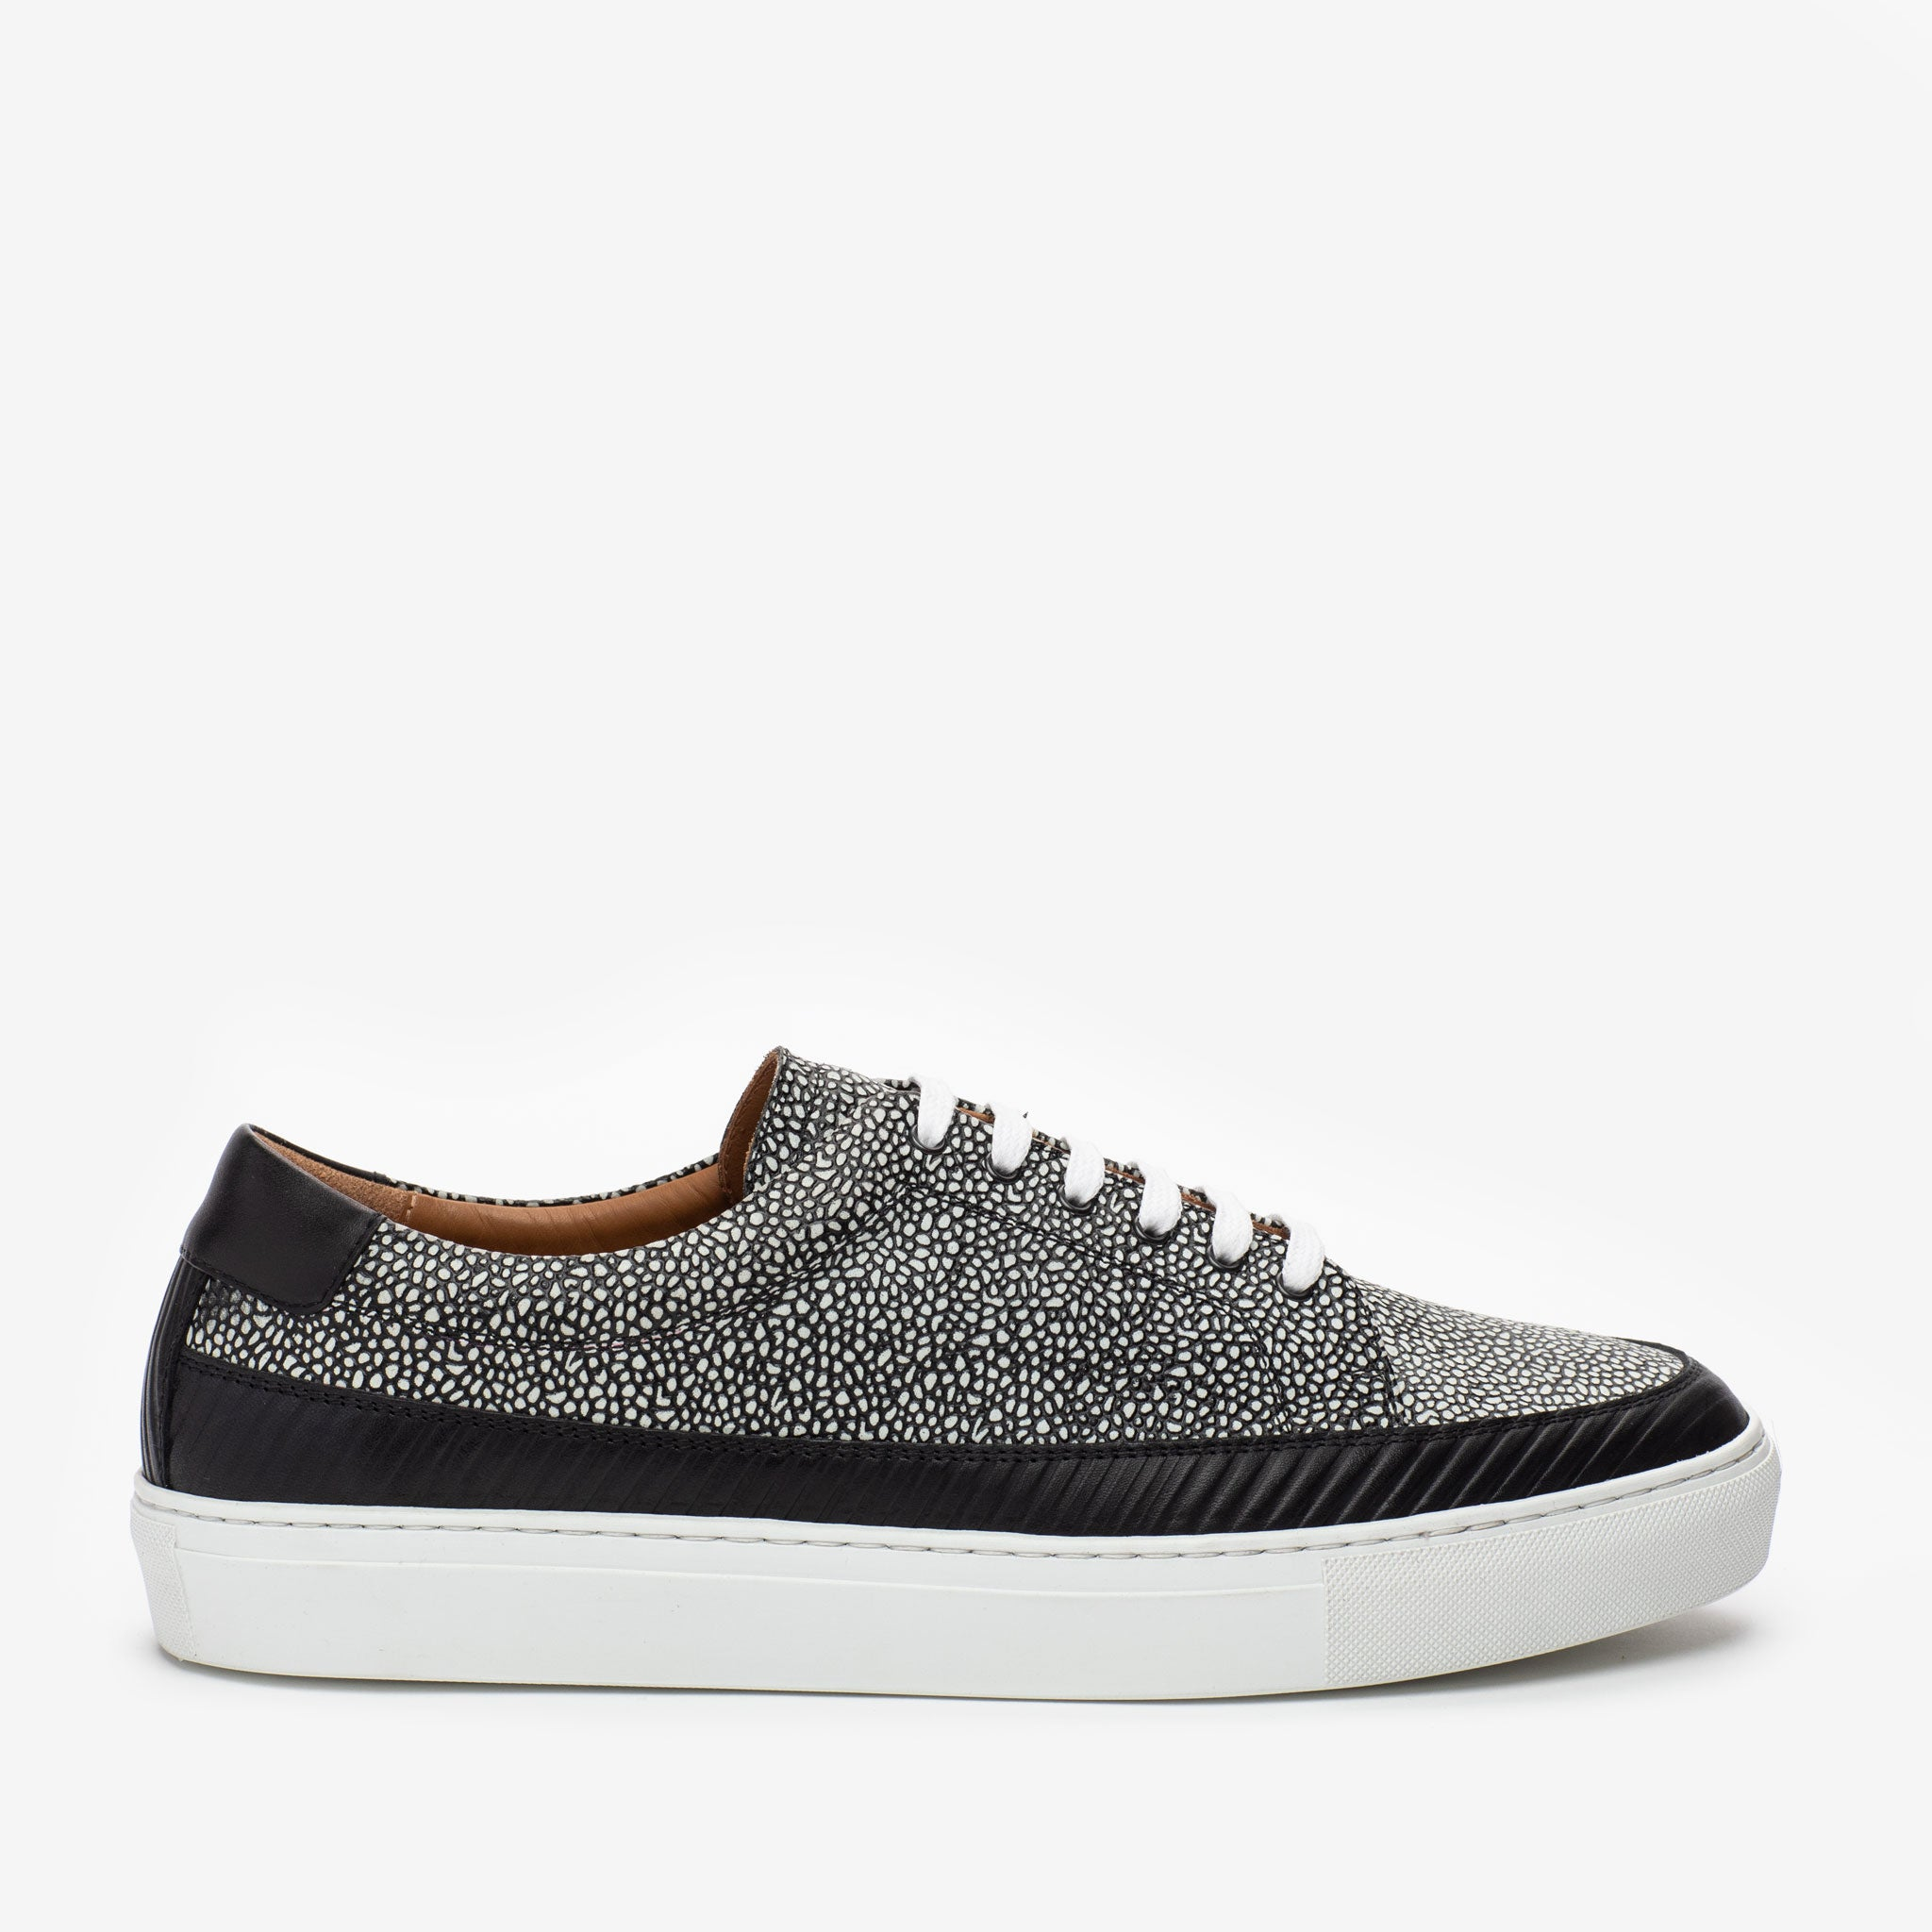 The Fifth Ave Sneaker in Stone